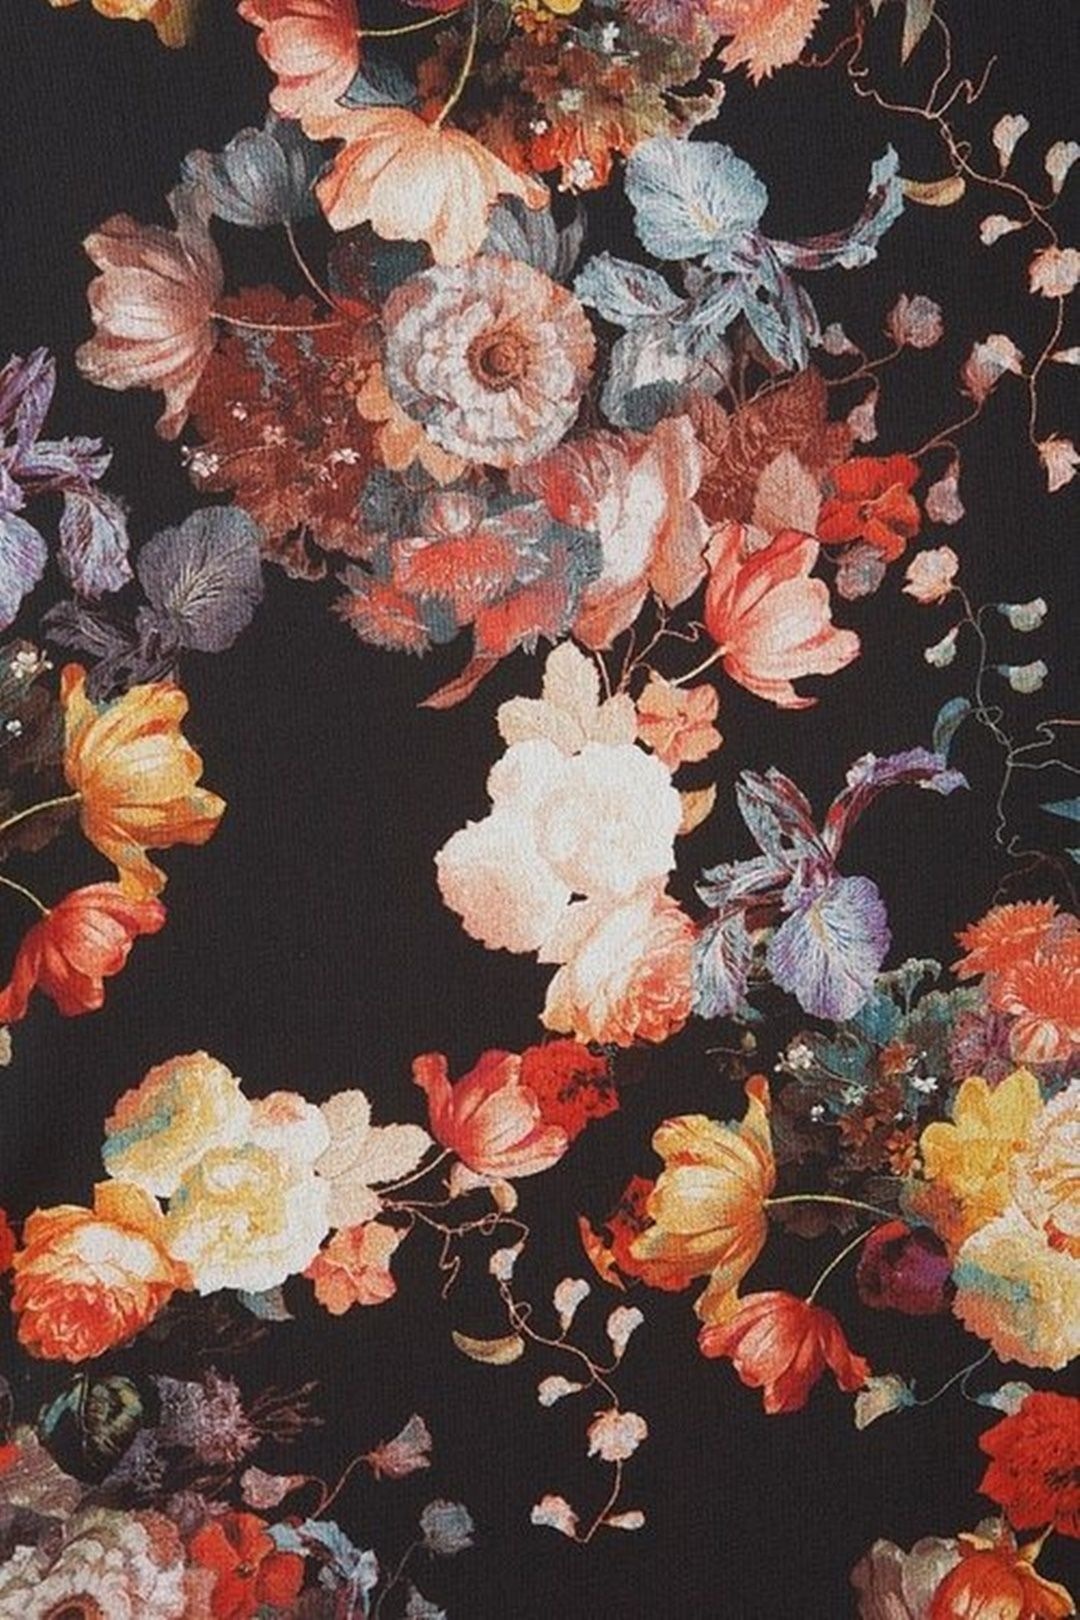 Pin by Hemant c on Your Pinterest Likes Floral print